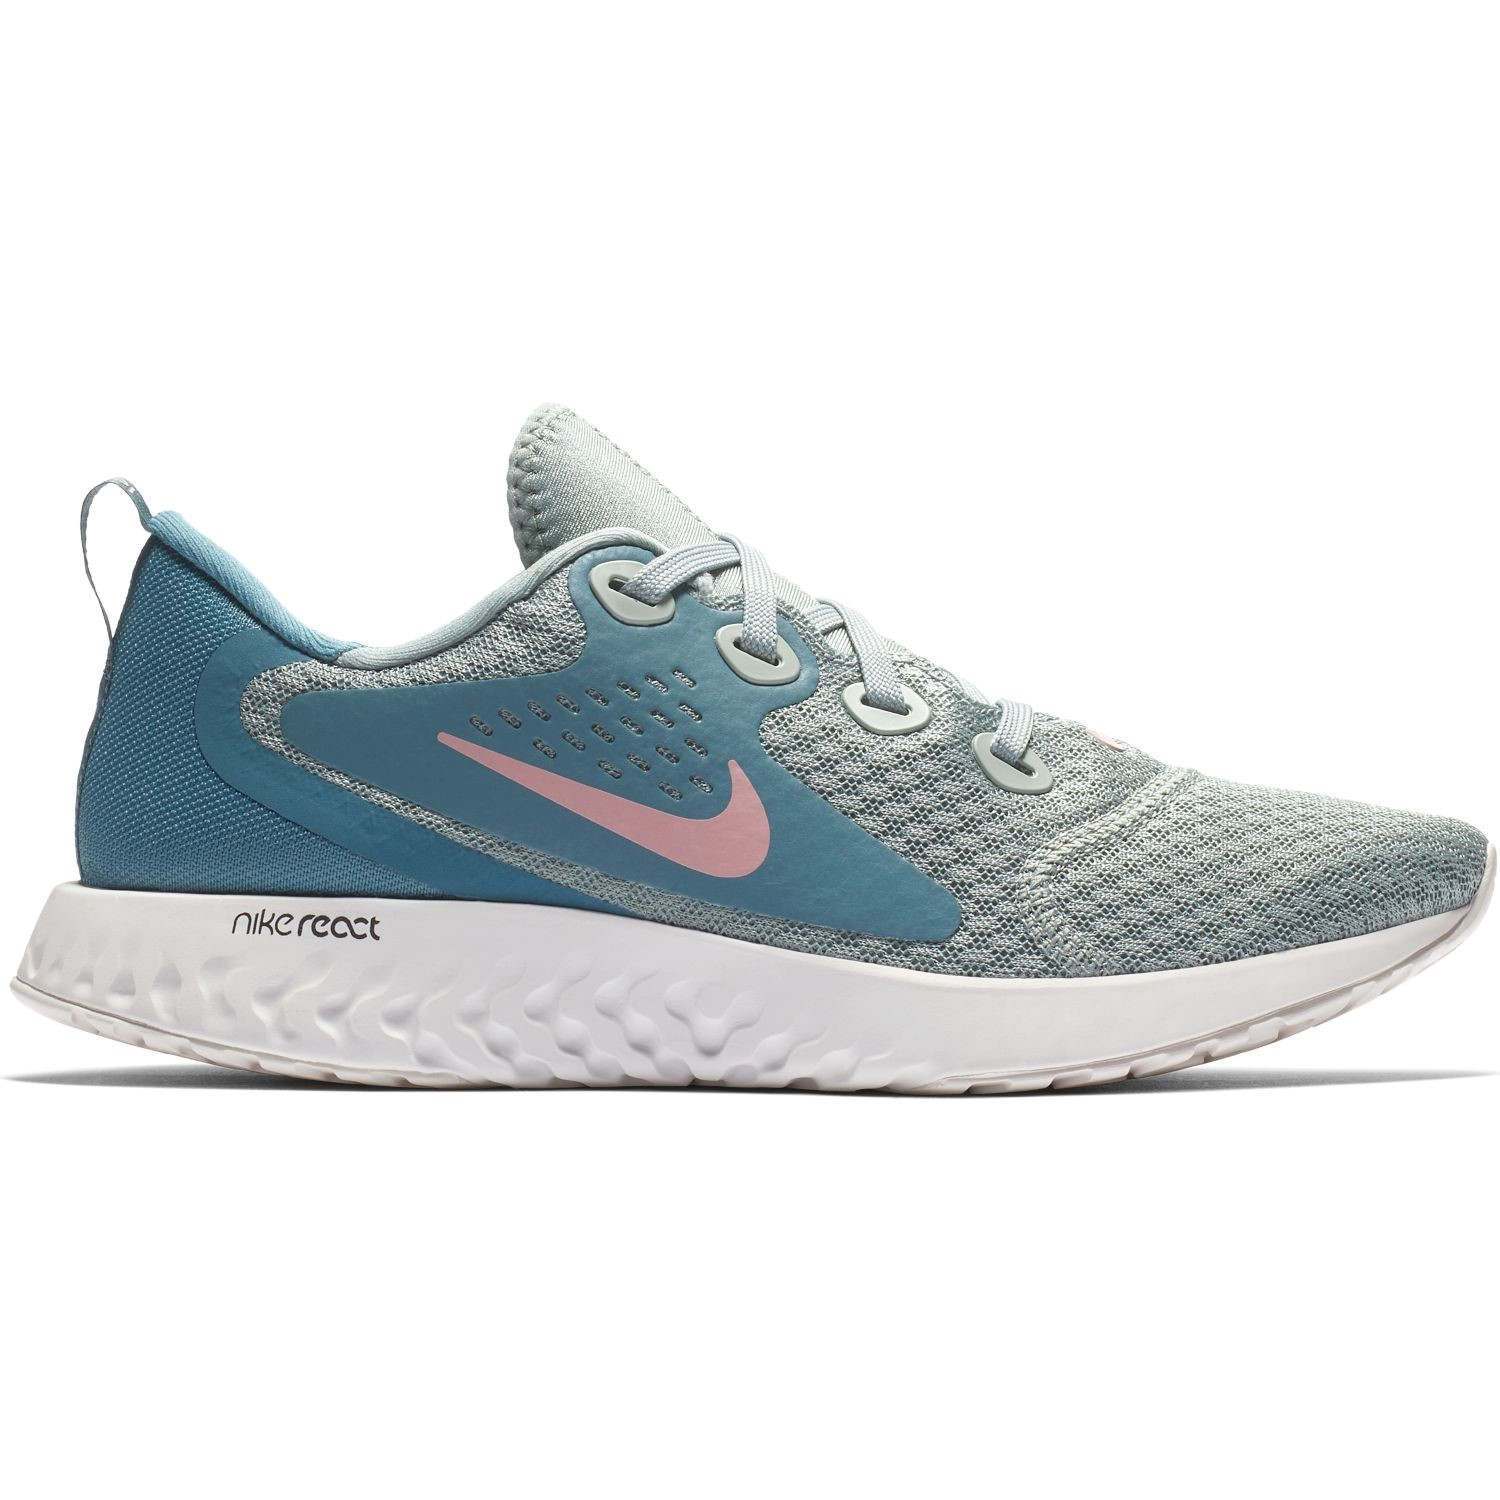 hot sale online c15ac 8688f Nike Legend React - Womens Running Shoes - Mica Green Celestial Teal Rust  Pink